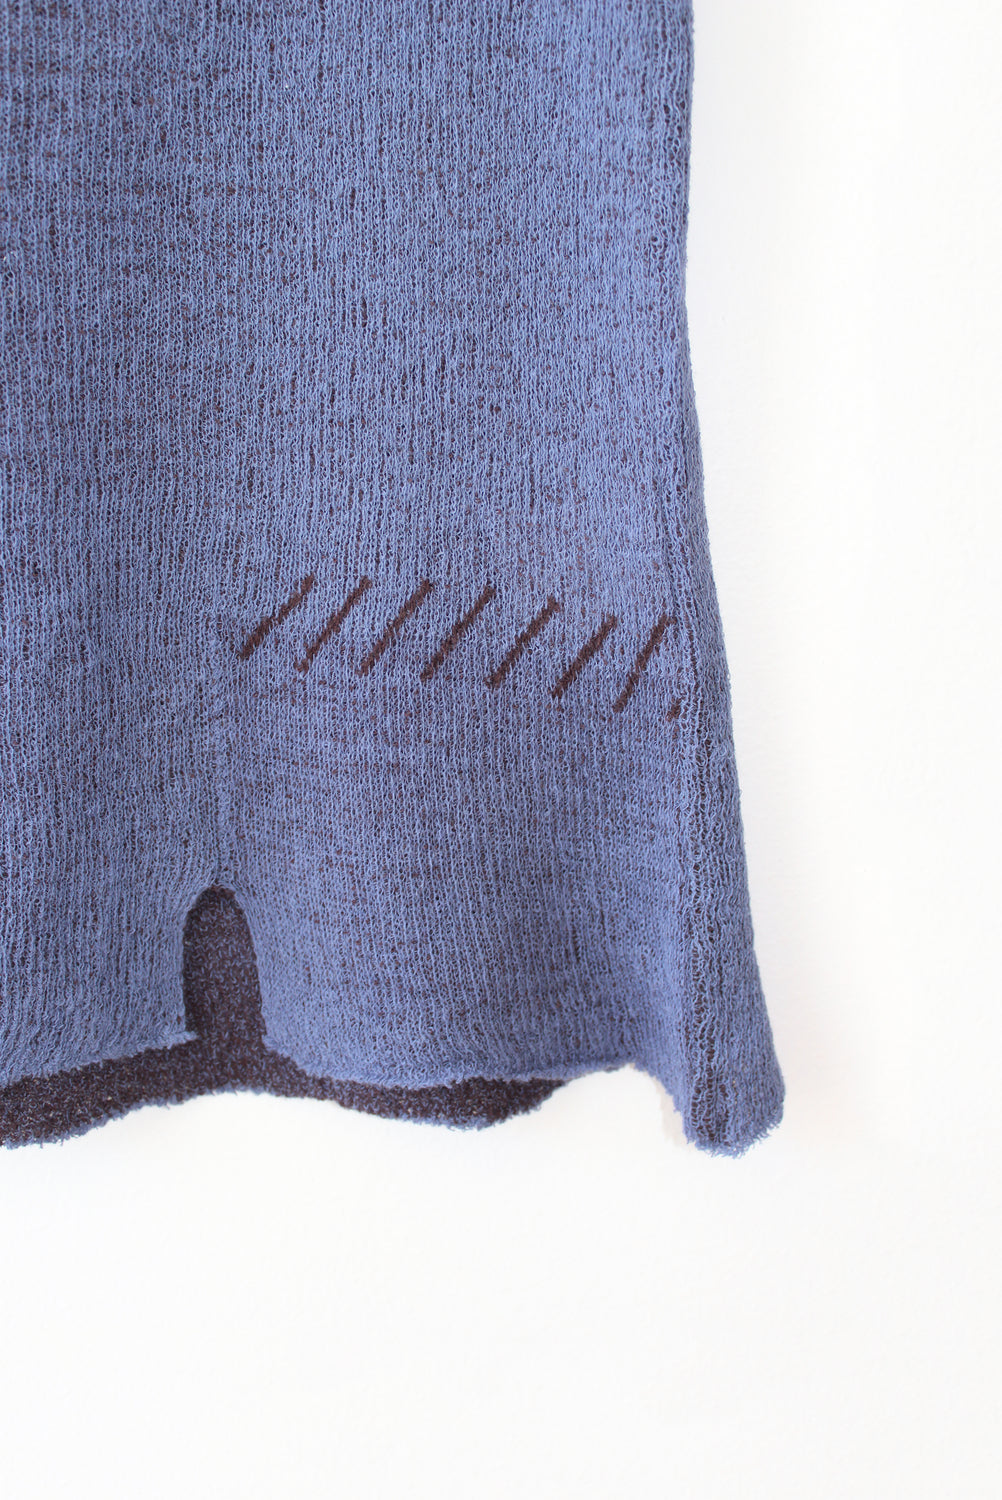 Cotton Knit Sleeveless Sweater, Blue